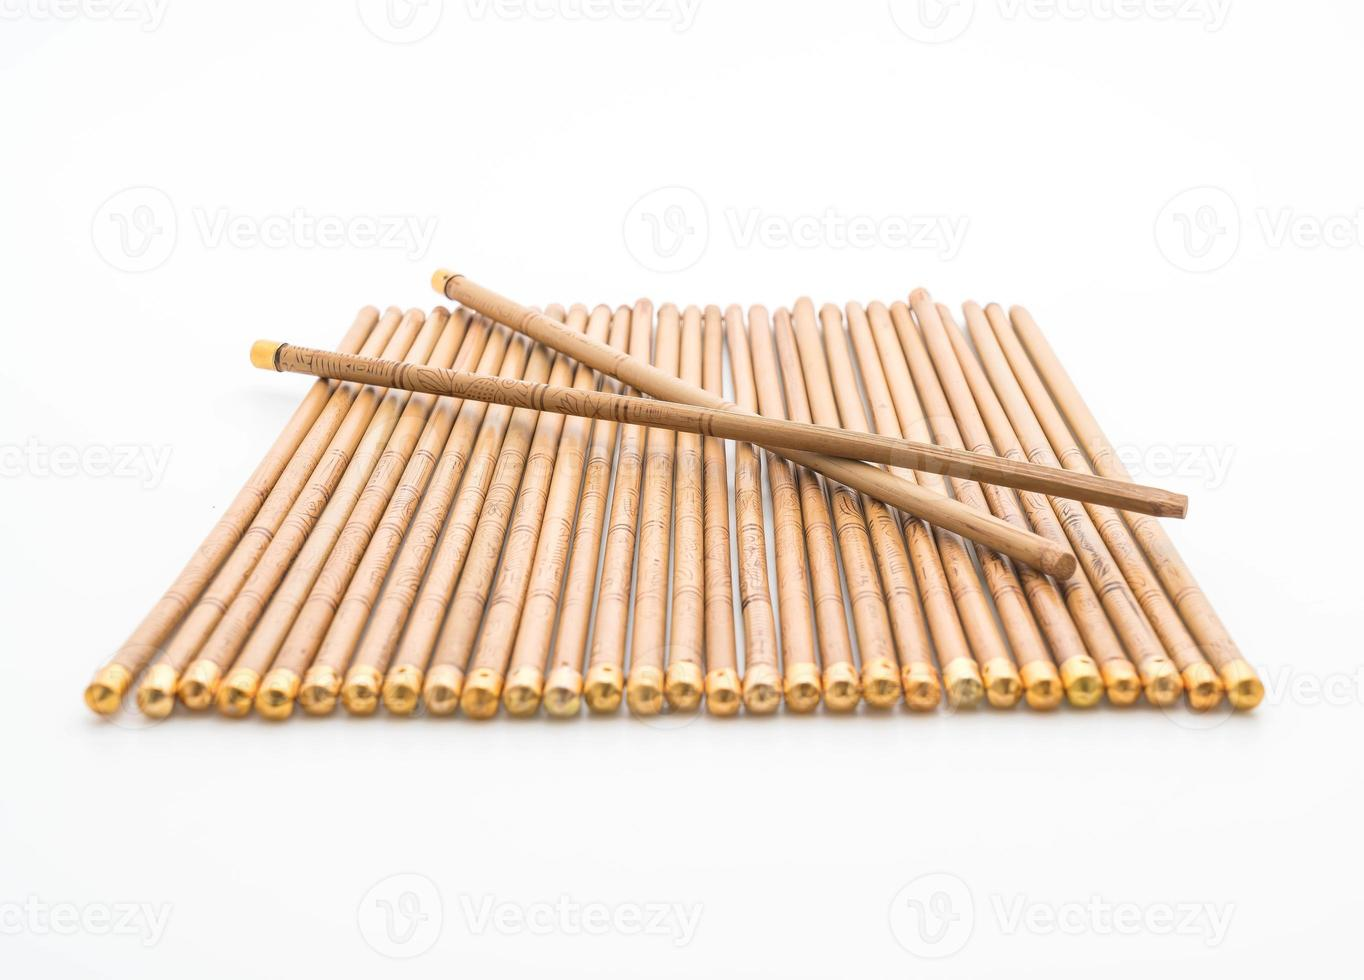 Bamboo chopsticks on white background photo